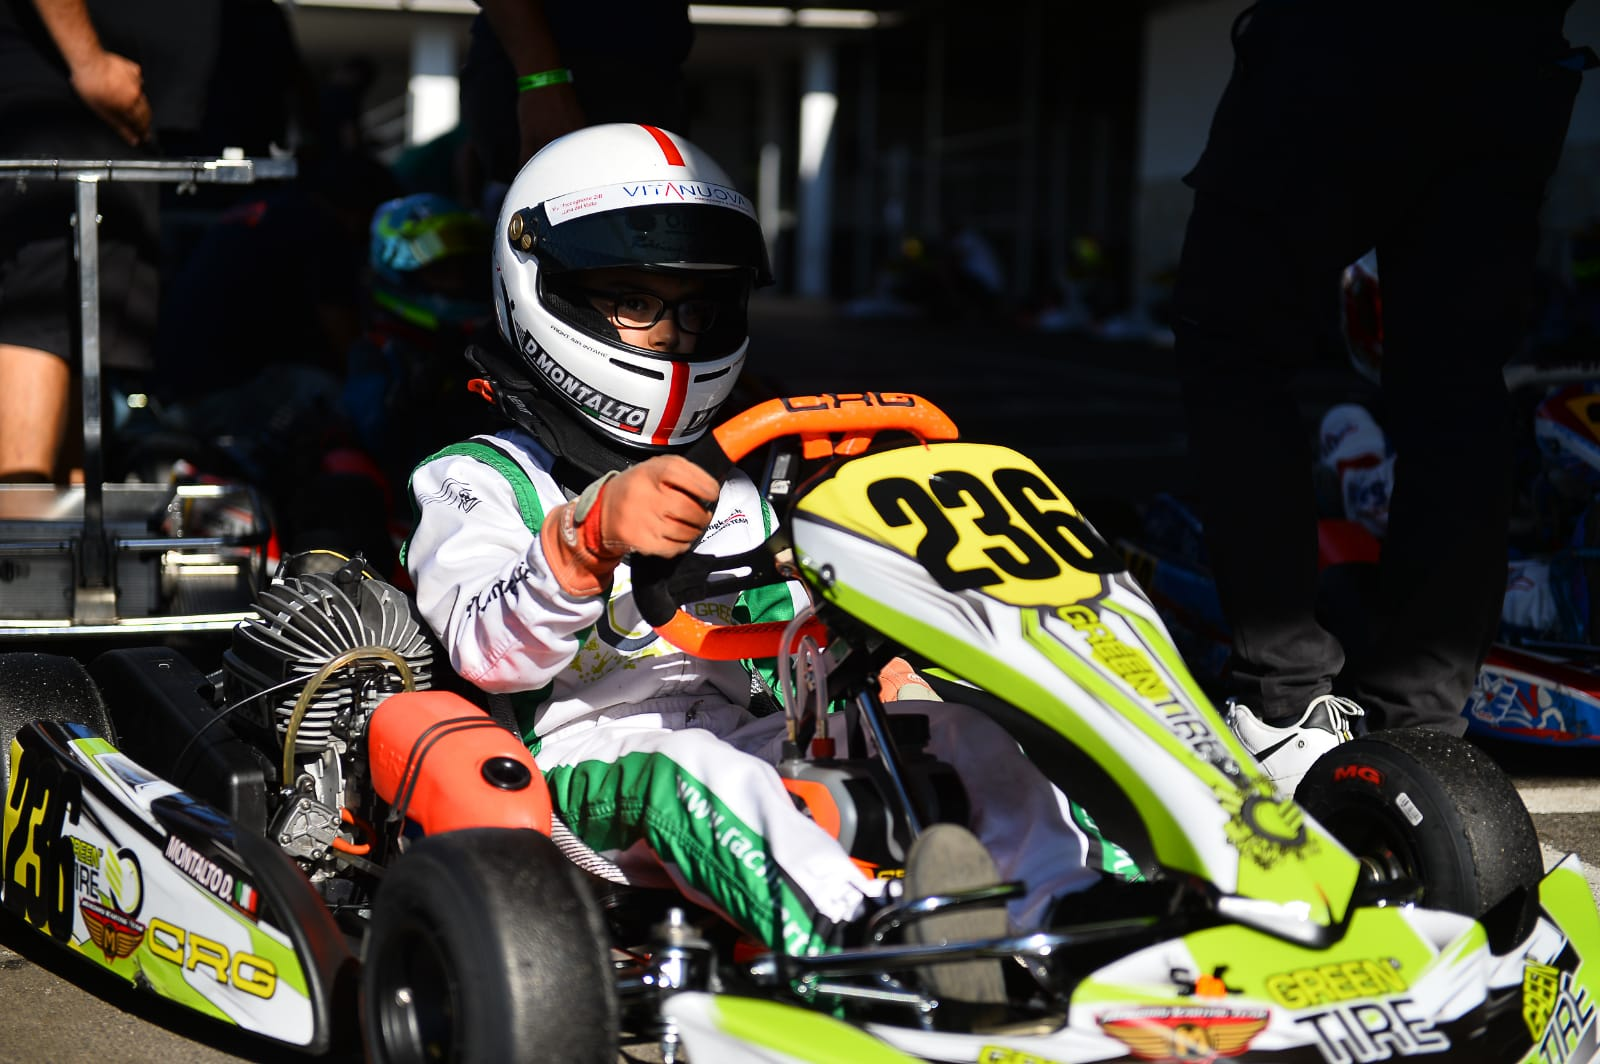 Con il Campionato Italiano ACI Karting riparte Greentire in pista